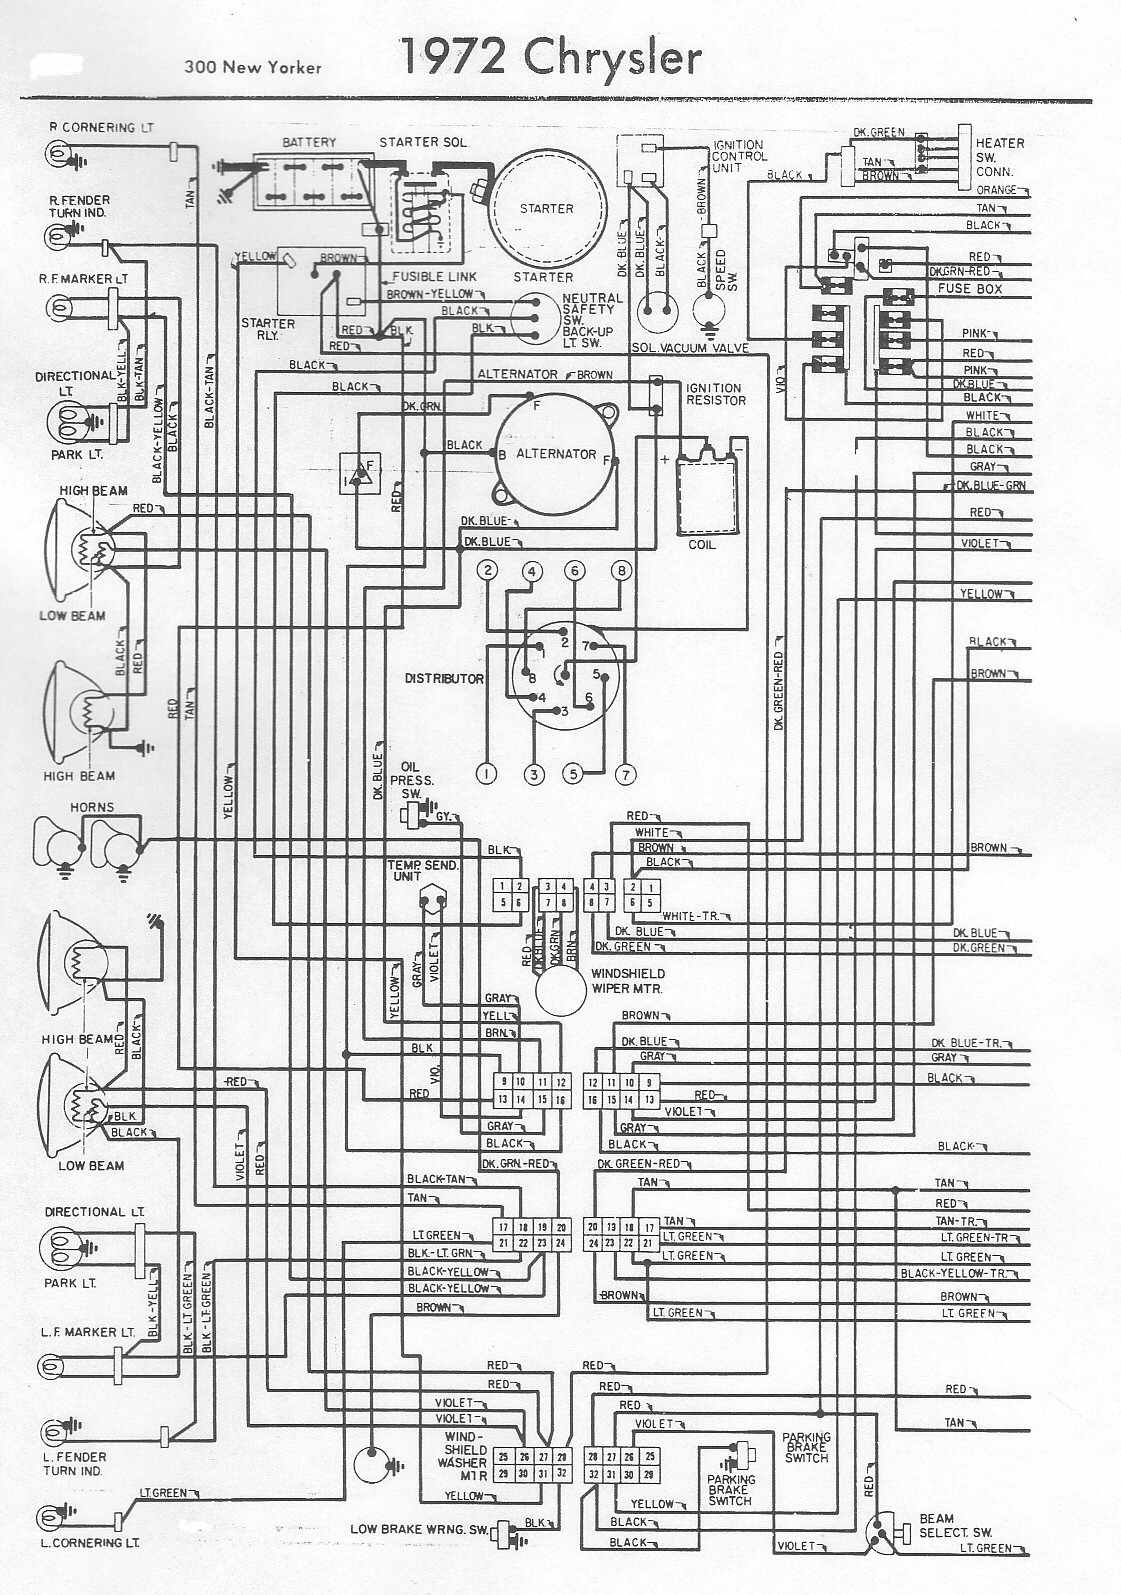 1954 mopar wiring diagrams simple wiring post mymopar wiring diagram 1954 chrysler wiring diagram data [ 1121 x 1595 Pixel ]